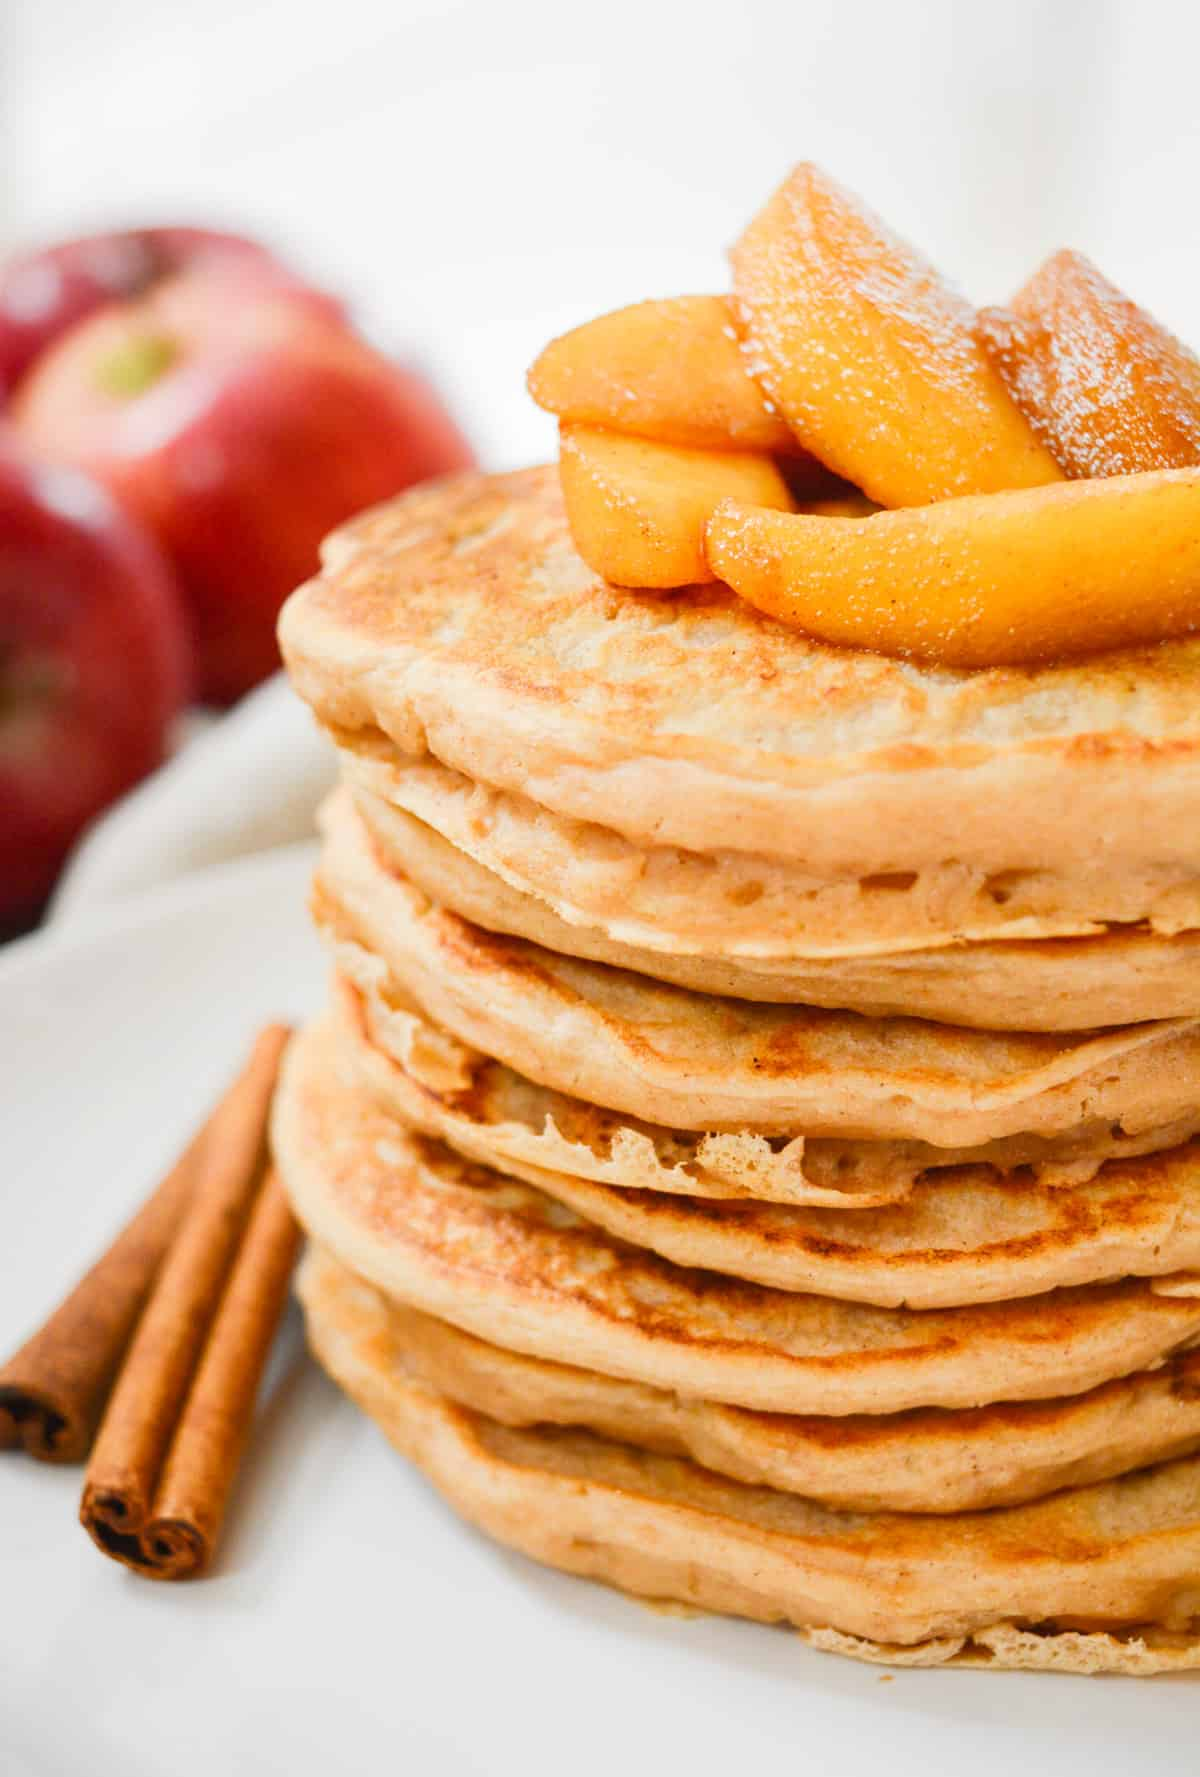 Apple Cinnamon Pancakes topped with cooked apples.